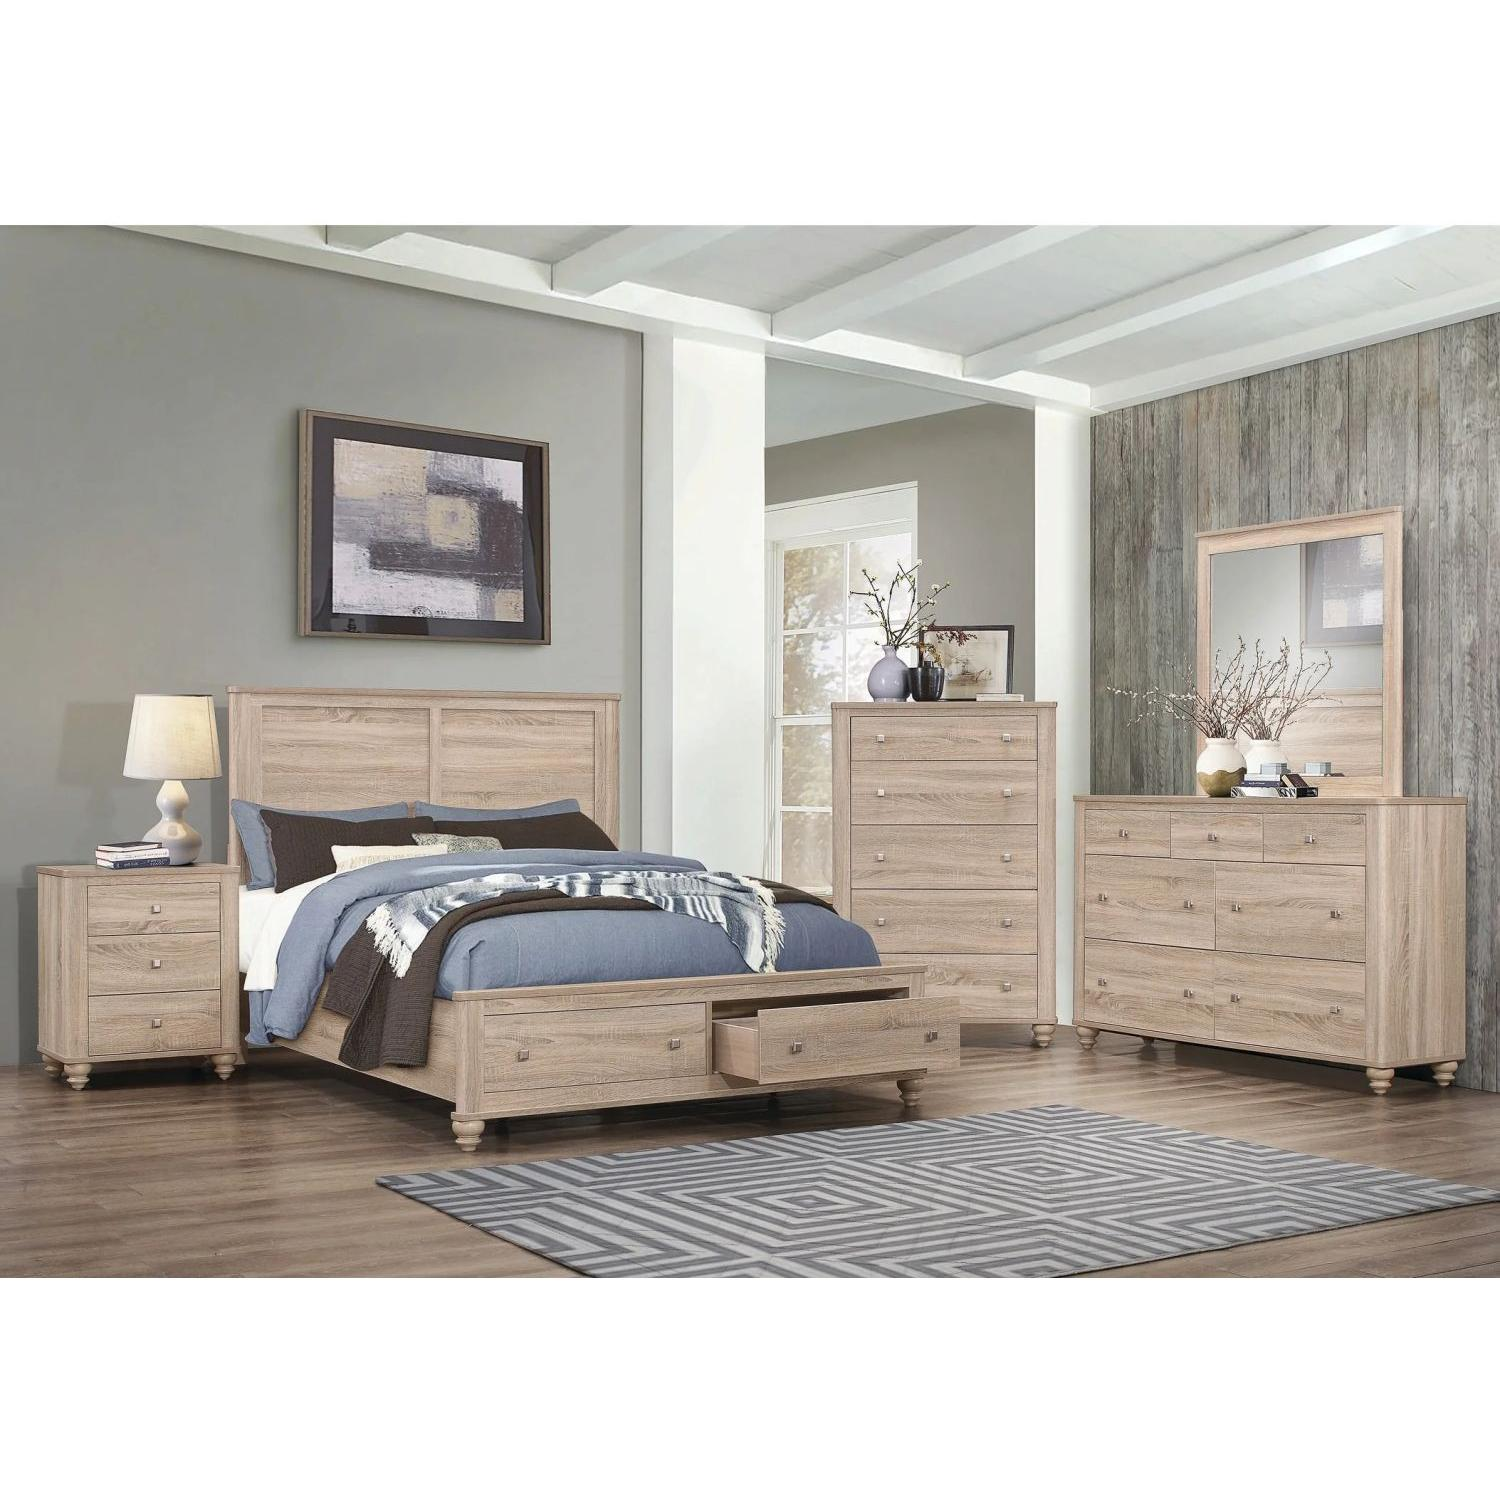 3-Piece Coffee & End Table Set in Warm Bourbon Finish - image-17